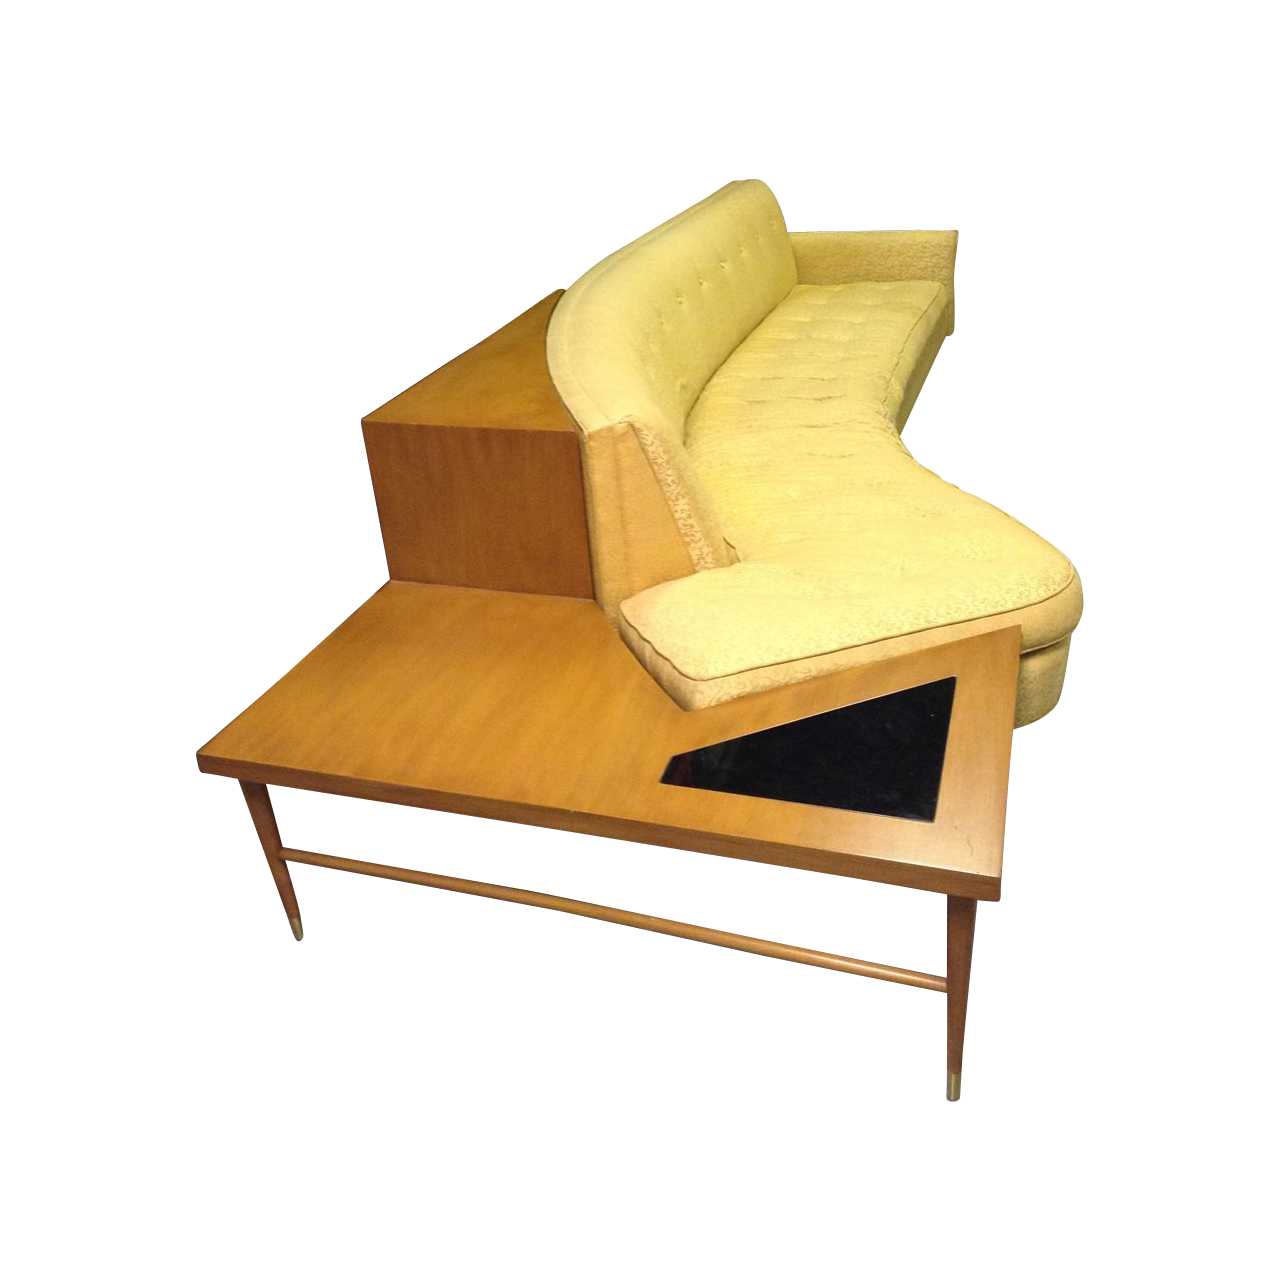 Mid century modern curved sofa with end table circa from ts